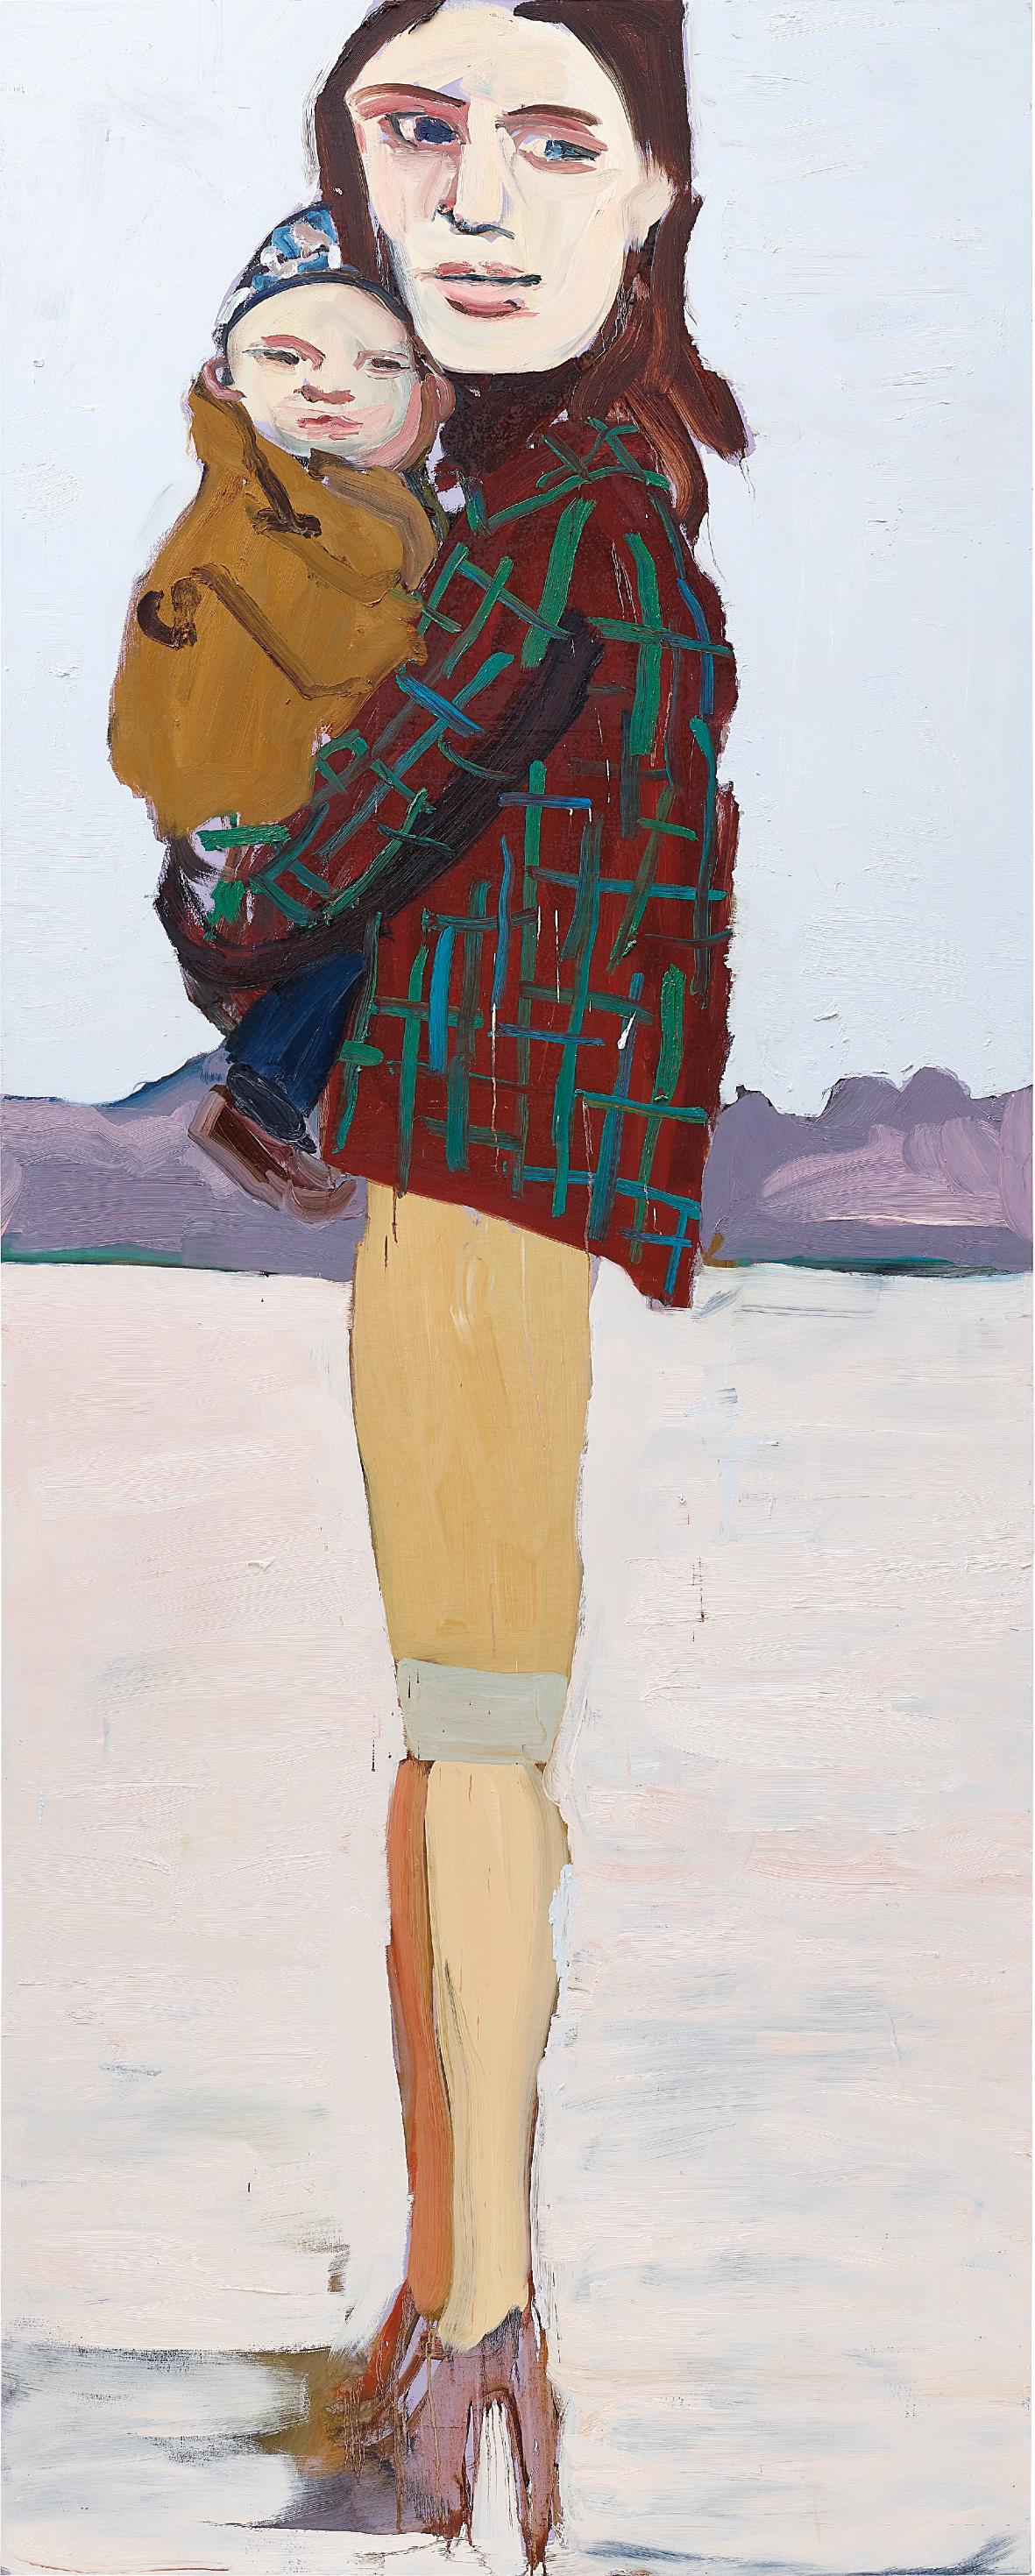 Chantal Joffe-Check Jacket and Baby-2004